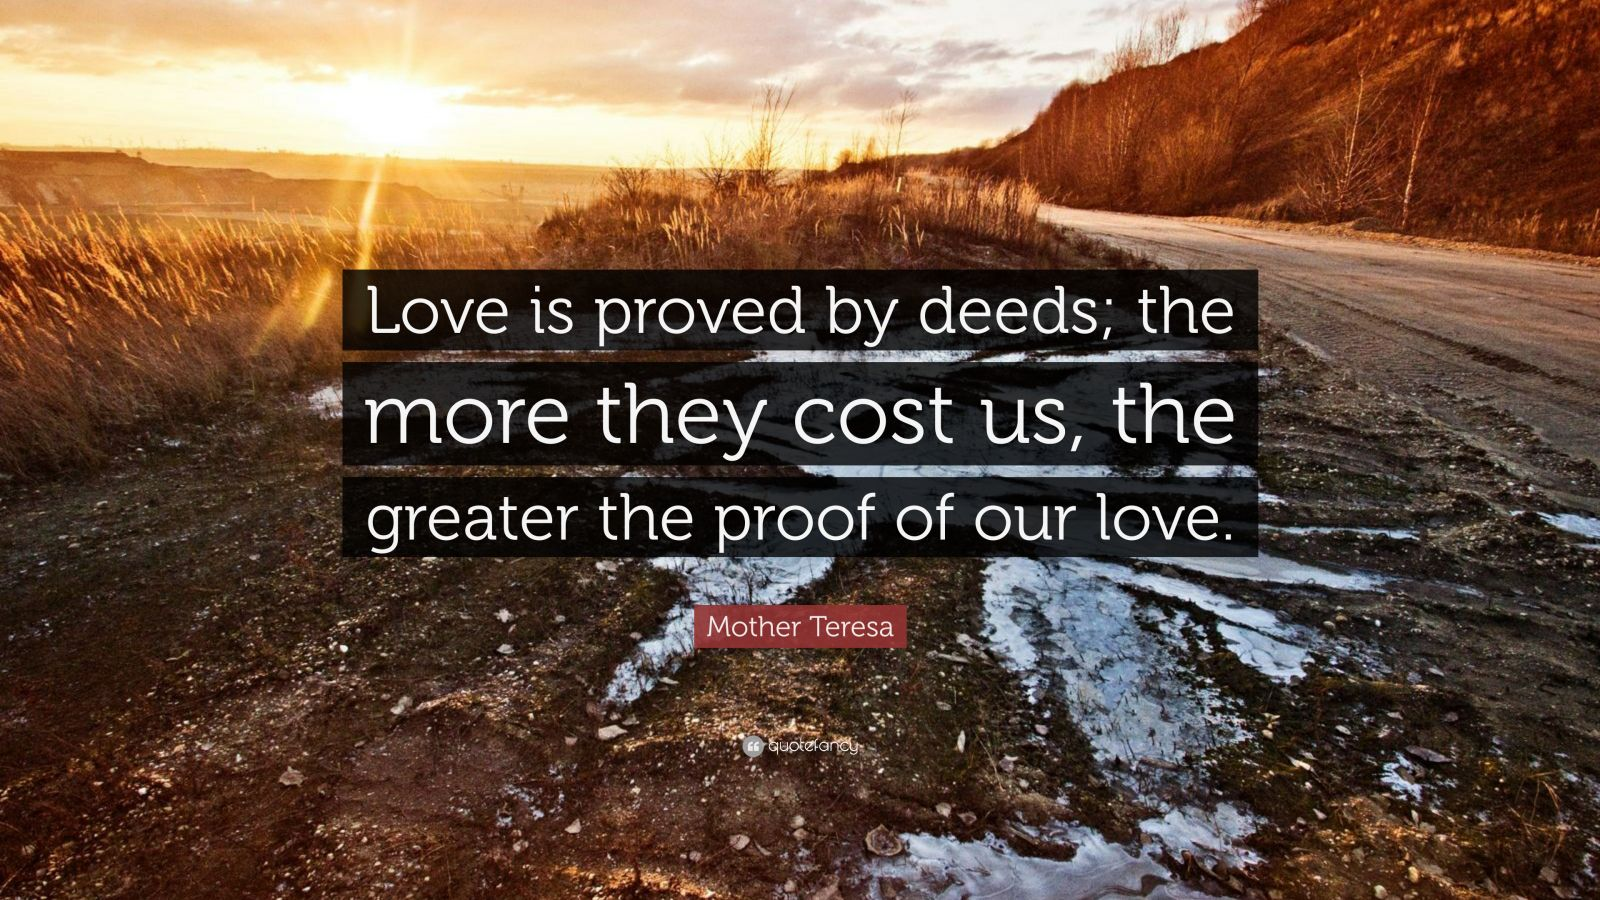 """Mother Teresa Quote: """"Love is proved by deeds; the more they cost us, the greater the proof of our love."""""""